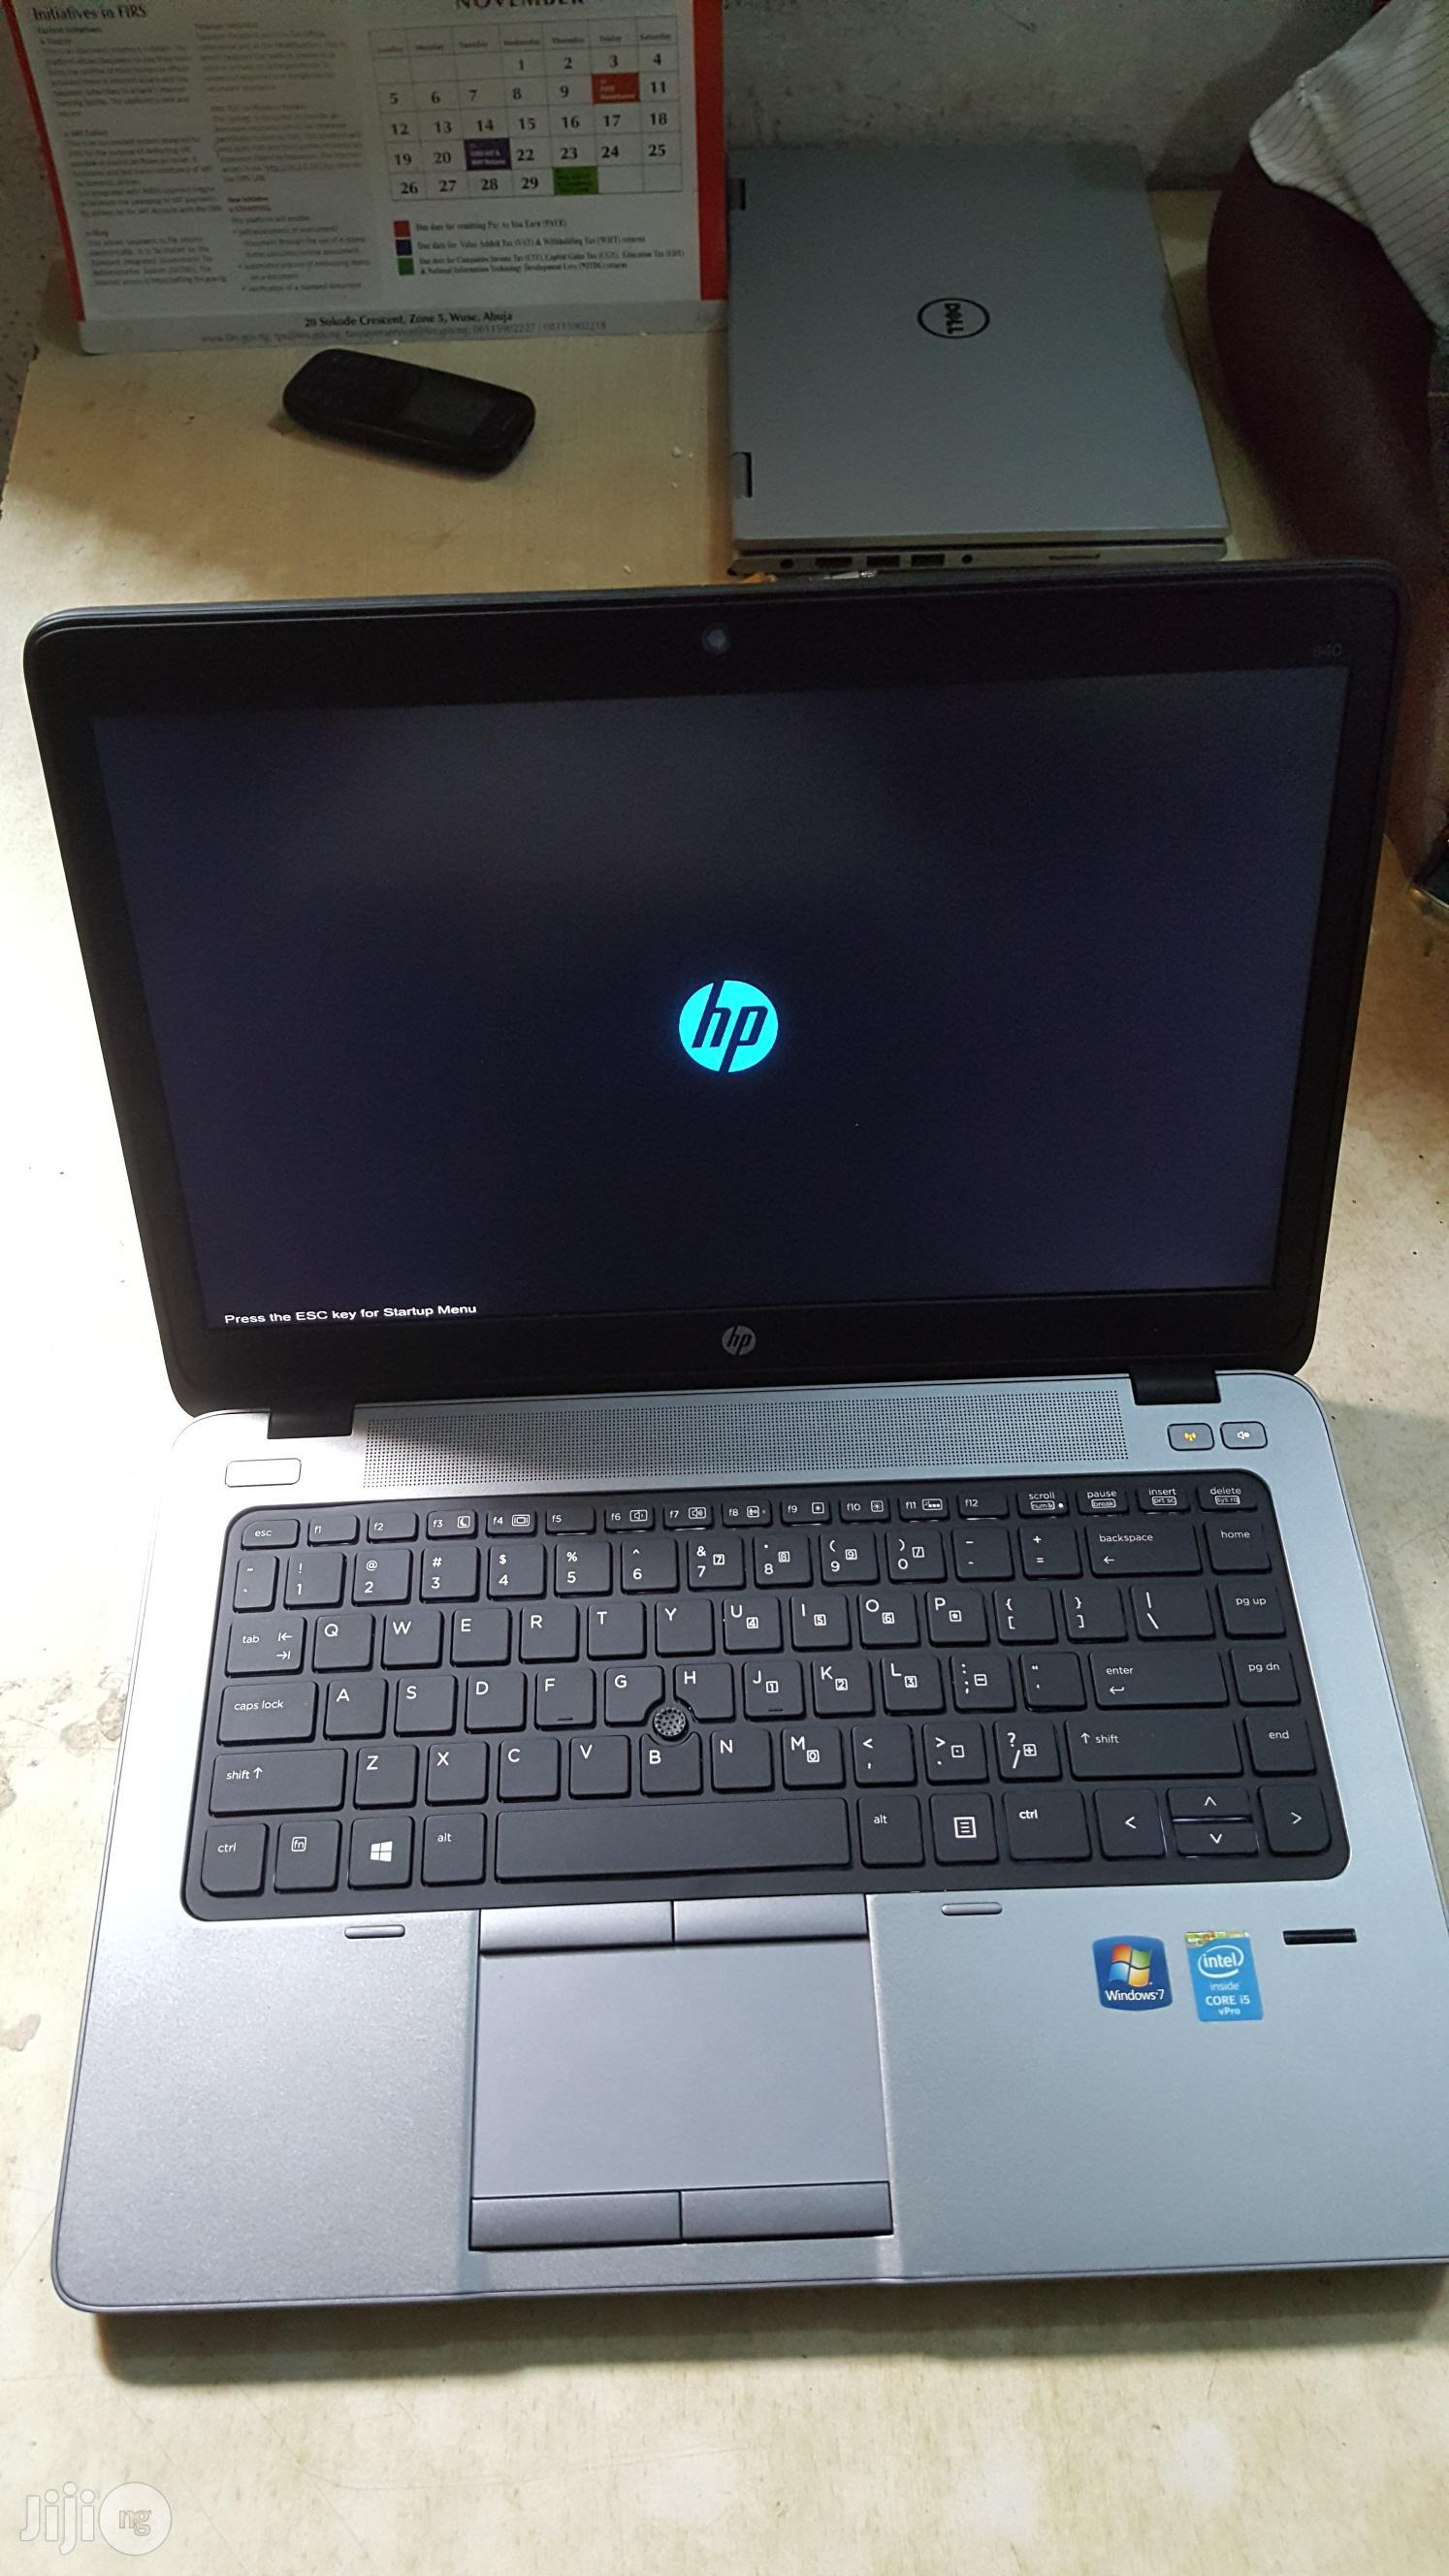 Laptop HP EliteBook 840 G1 4GB Intel Core i5 HDD 500GB | Laptops & Computers for sale in Ikeja, Lagos State, Nigeria